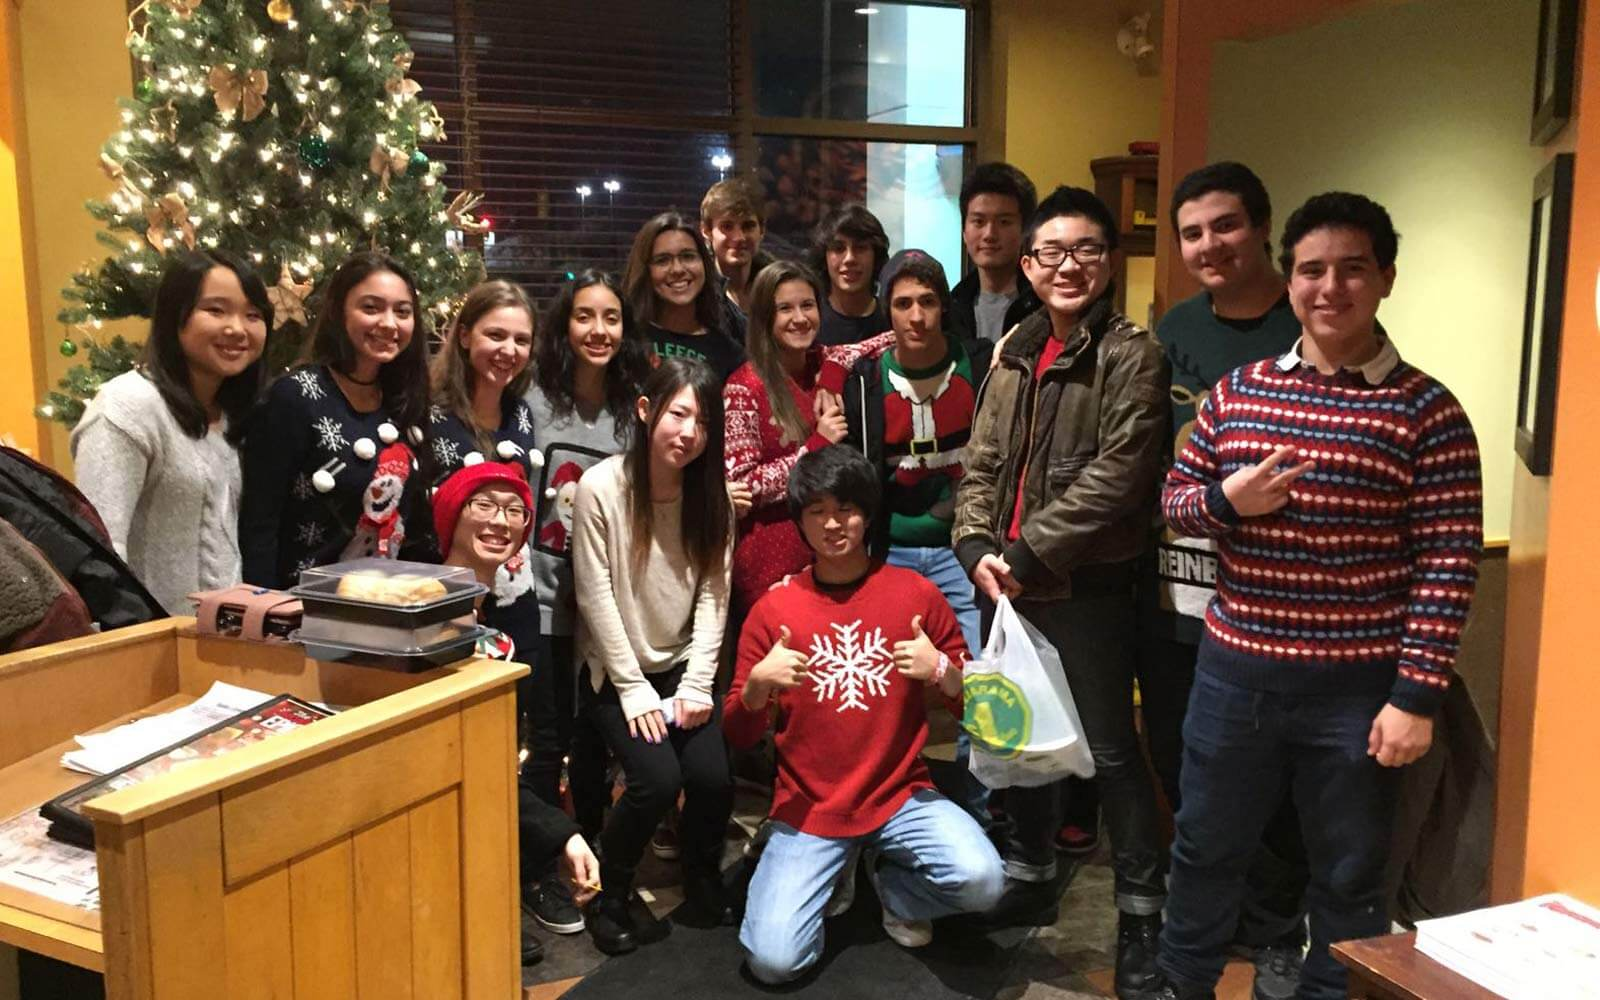 Weihnachtsfeier der International Students in Nova Scotia